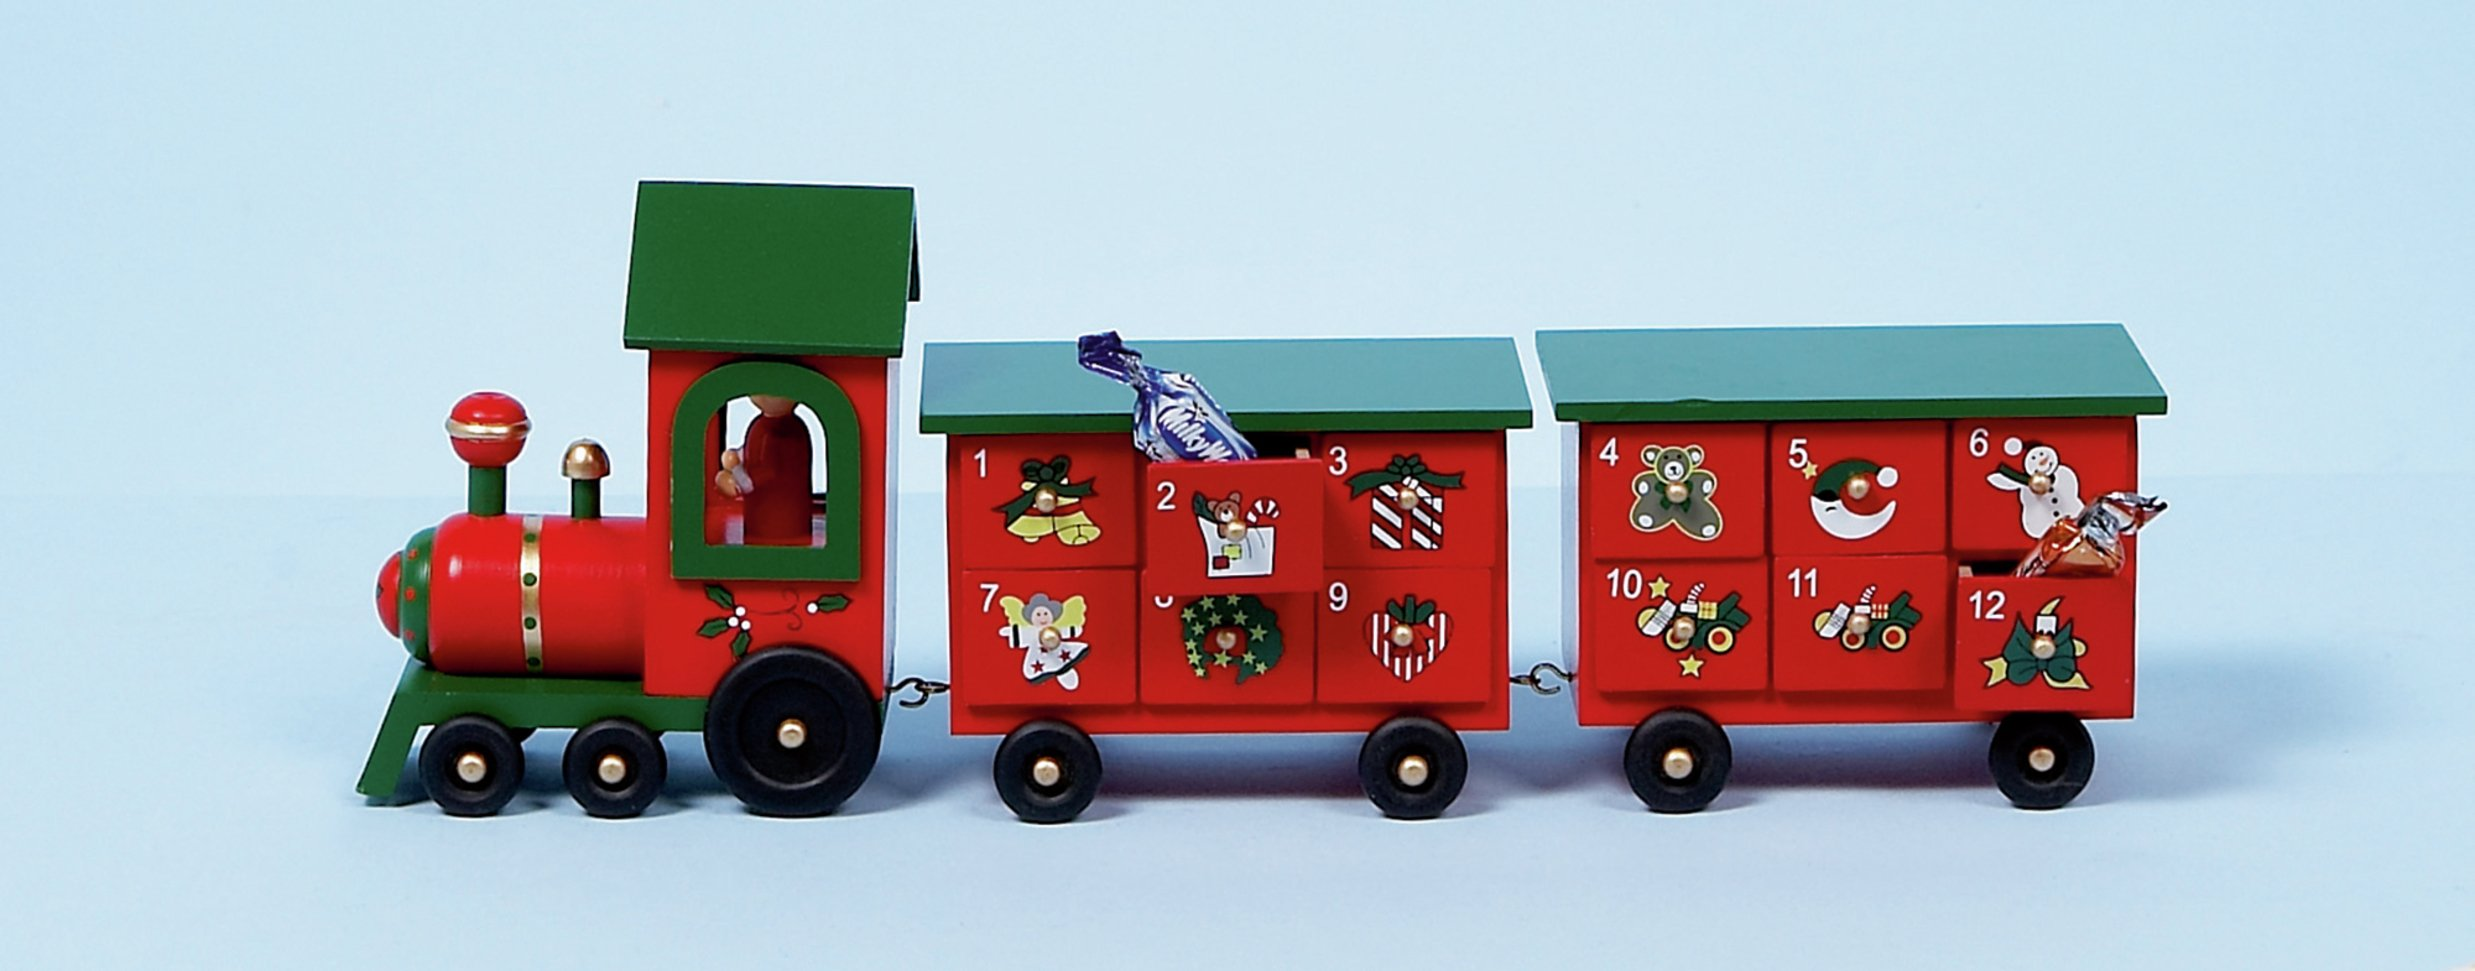 premier-decorations-wooden-train-advent-ornament-red